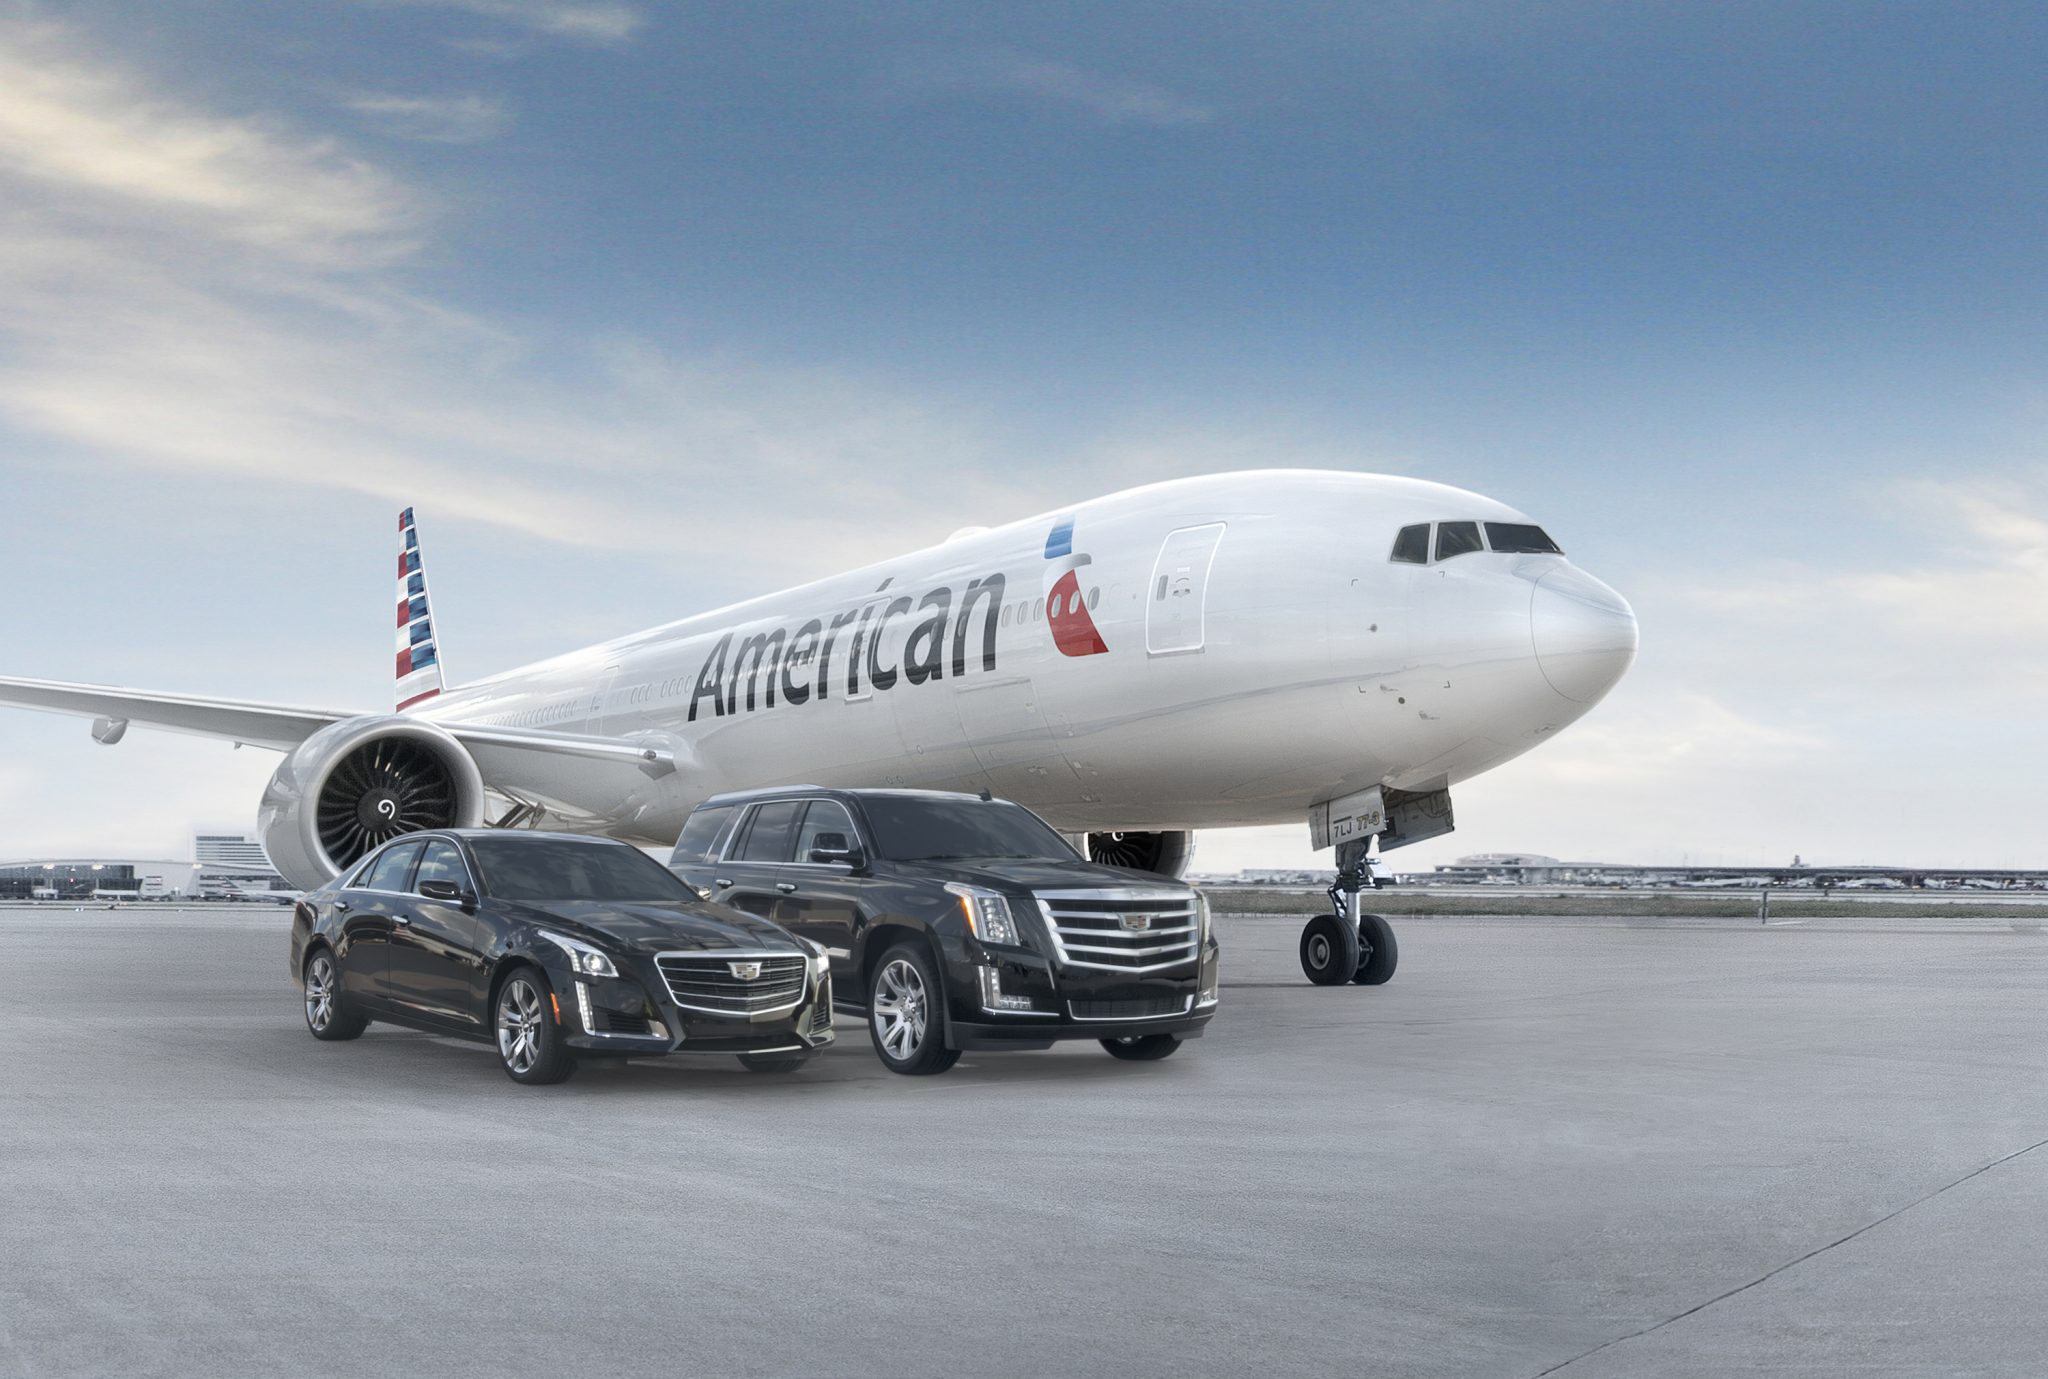 Cadillac And American Airlines Team Up To Offer Exclusive